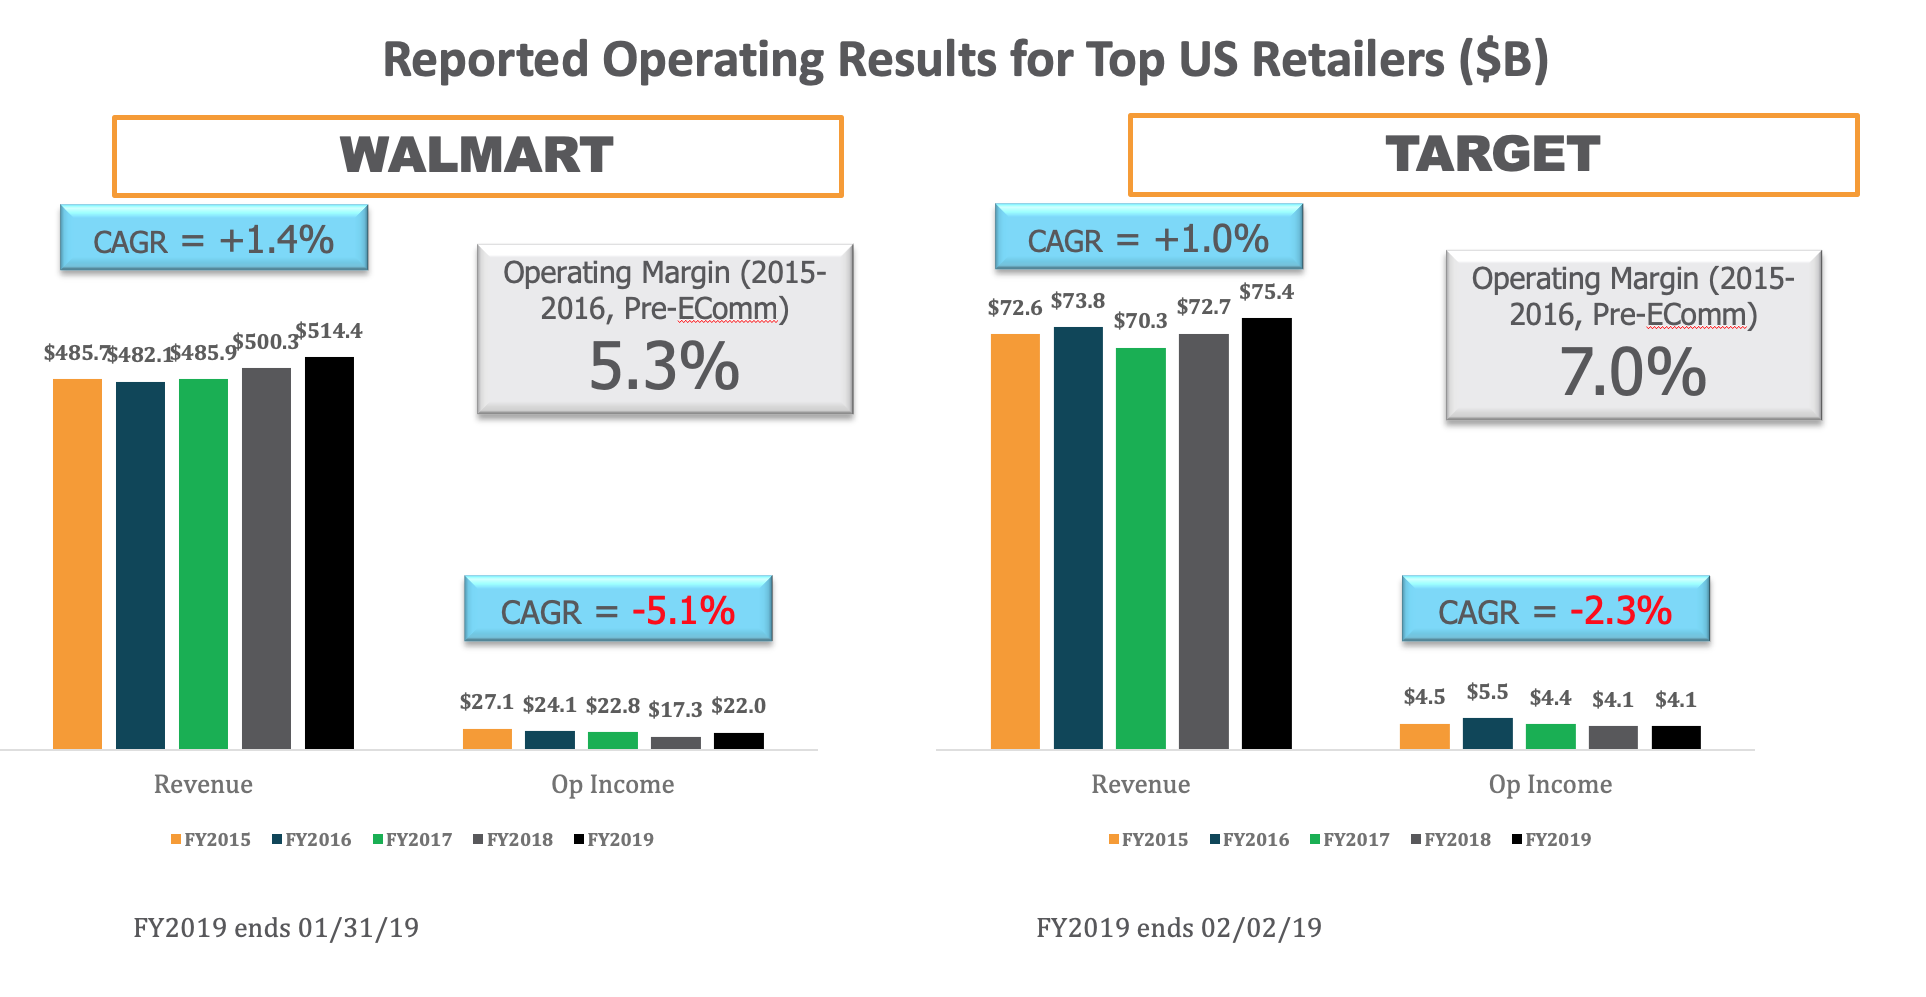 Reported-Operating-Results-For-Top-U.S.-Retailers2 (1)